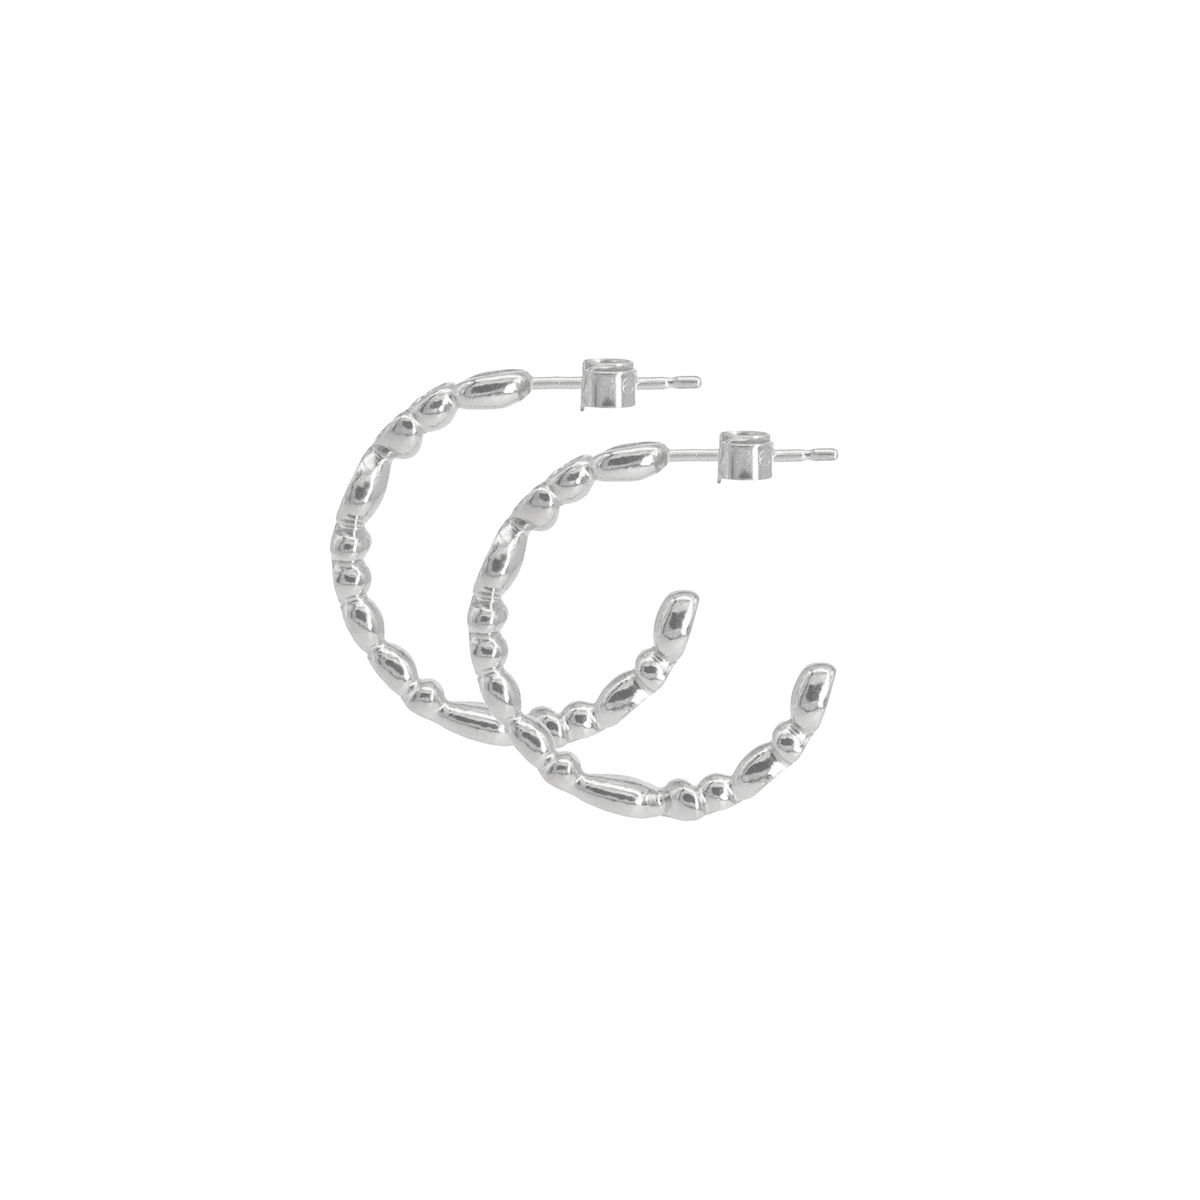 SHIMMER small hoop earrings - sterling silver - product images  of